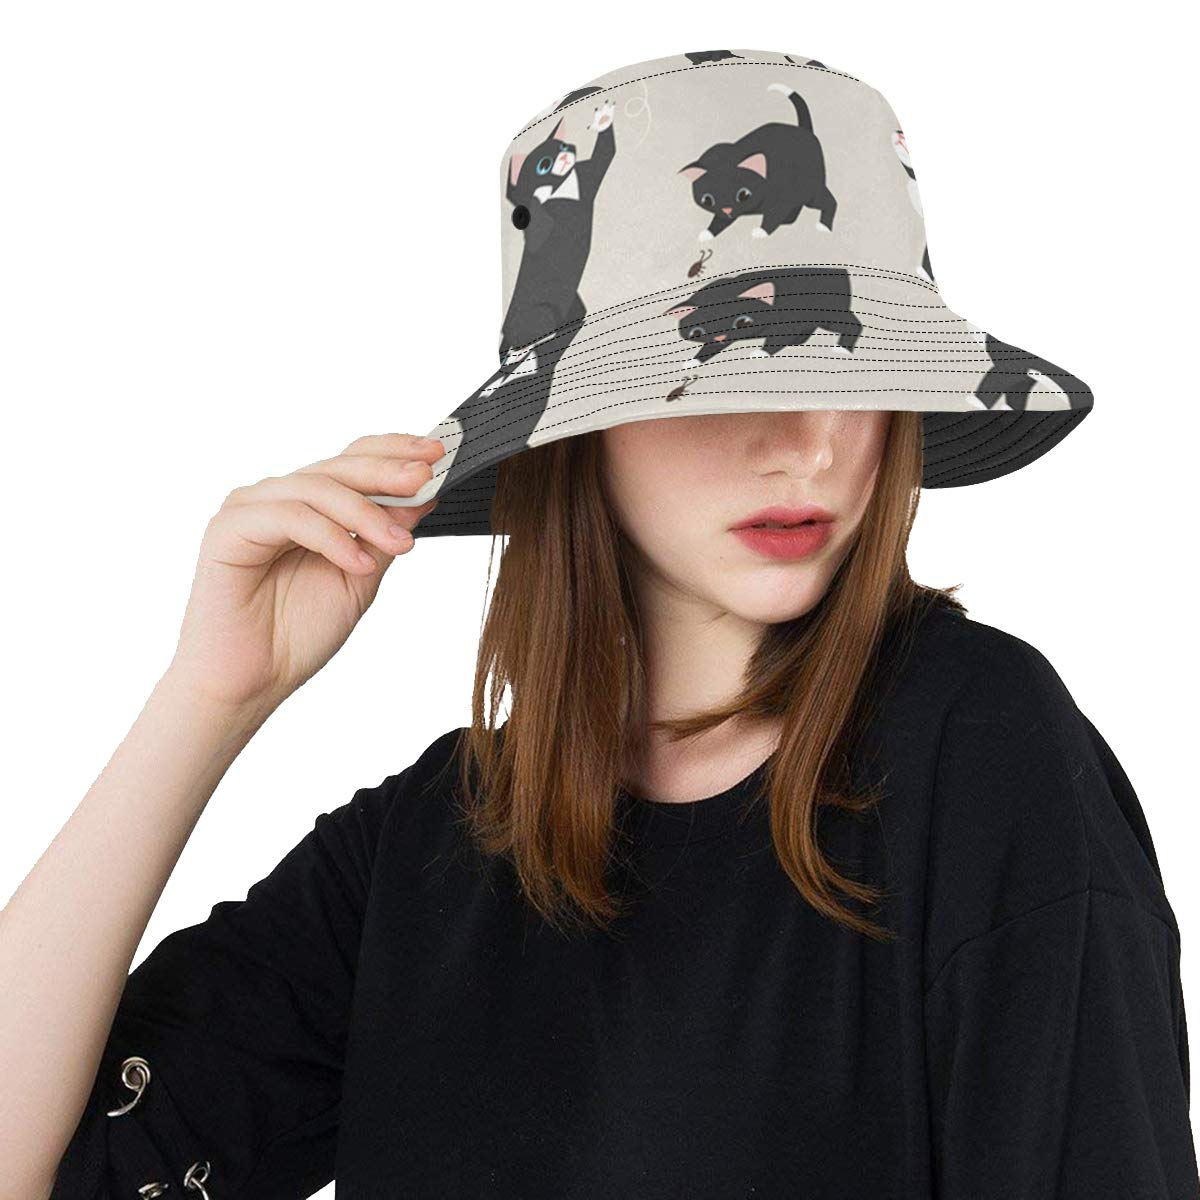 Women and Men with Customize Top Packable Fisherman Cap for Outdoor Travel Little Funny Cats Playing Ball New Summer Unisex Cotton Fashion Fishing Sun Bucket Hats for Kid Teens